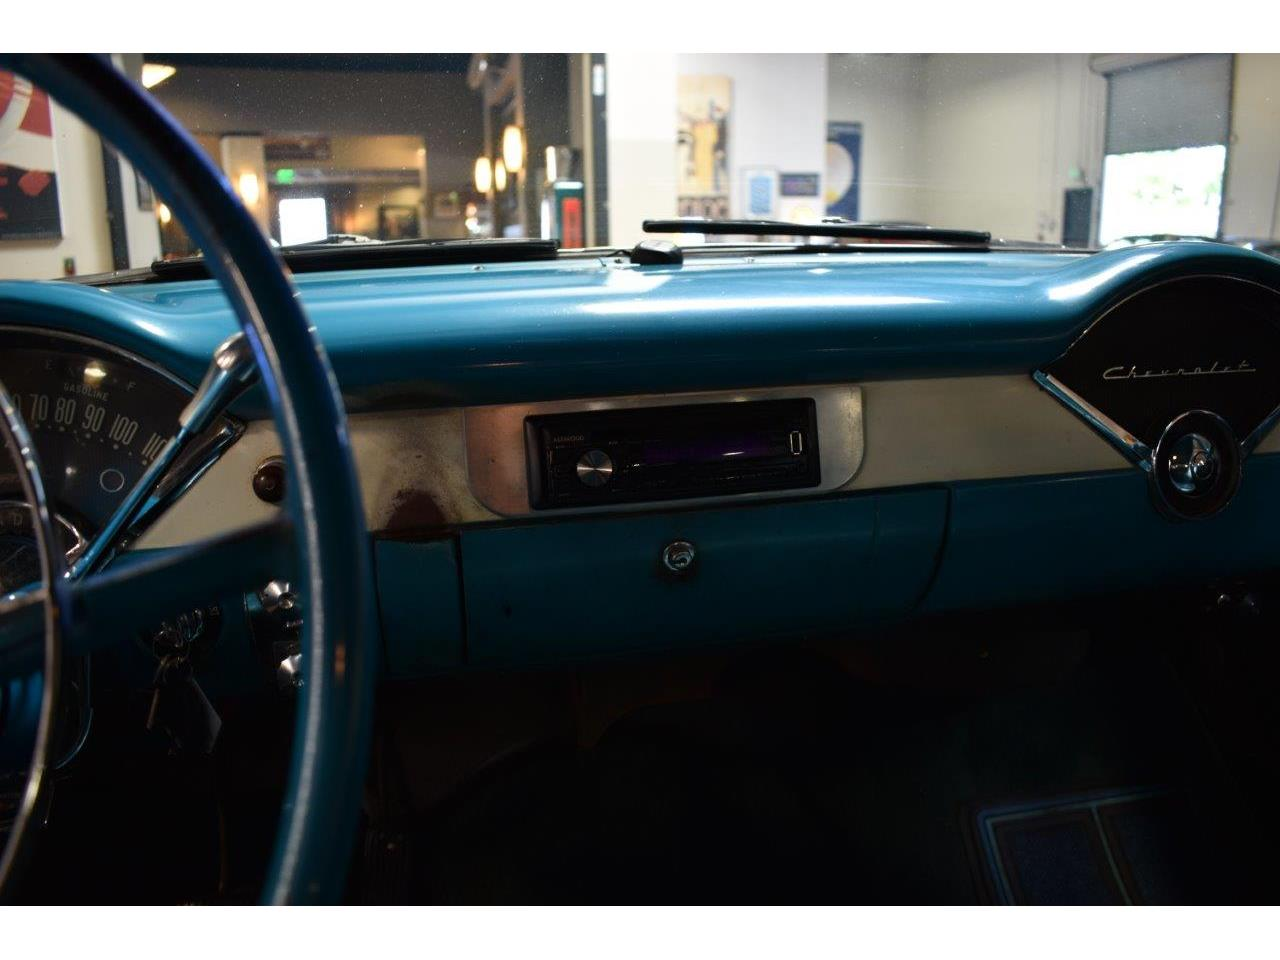 Large Picture of 1956 Chevrolet Bel Air located in California - $19,900.00 Offered by Crevier Classic Cars - Q5GK